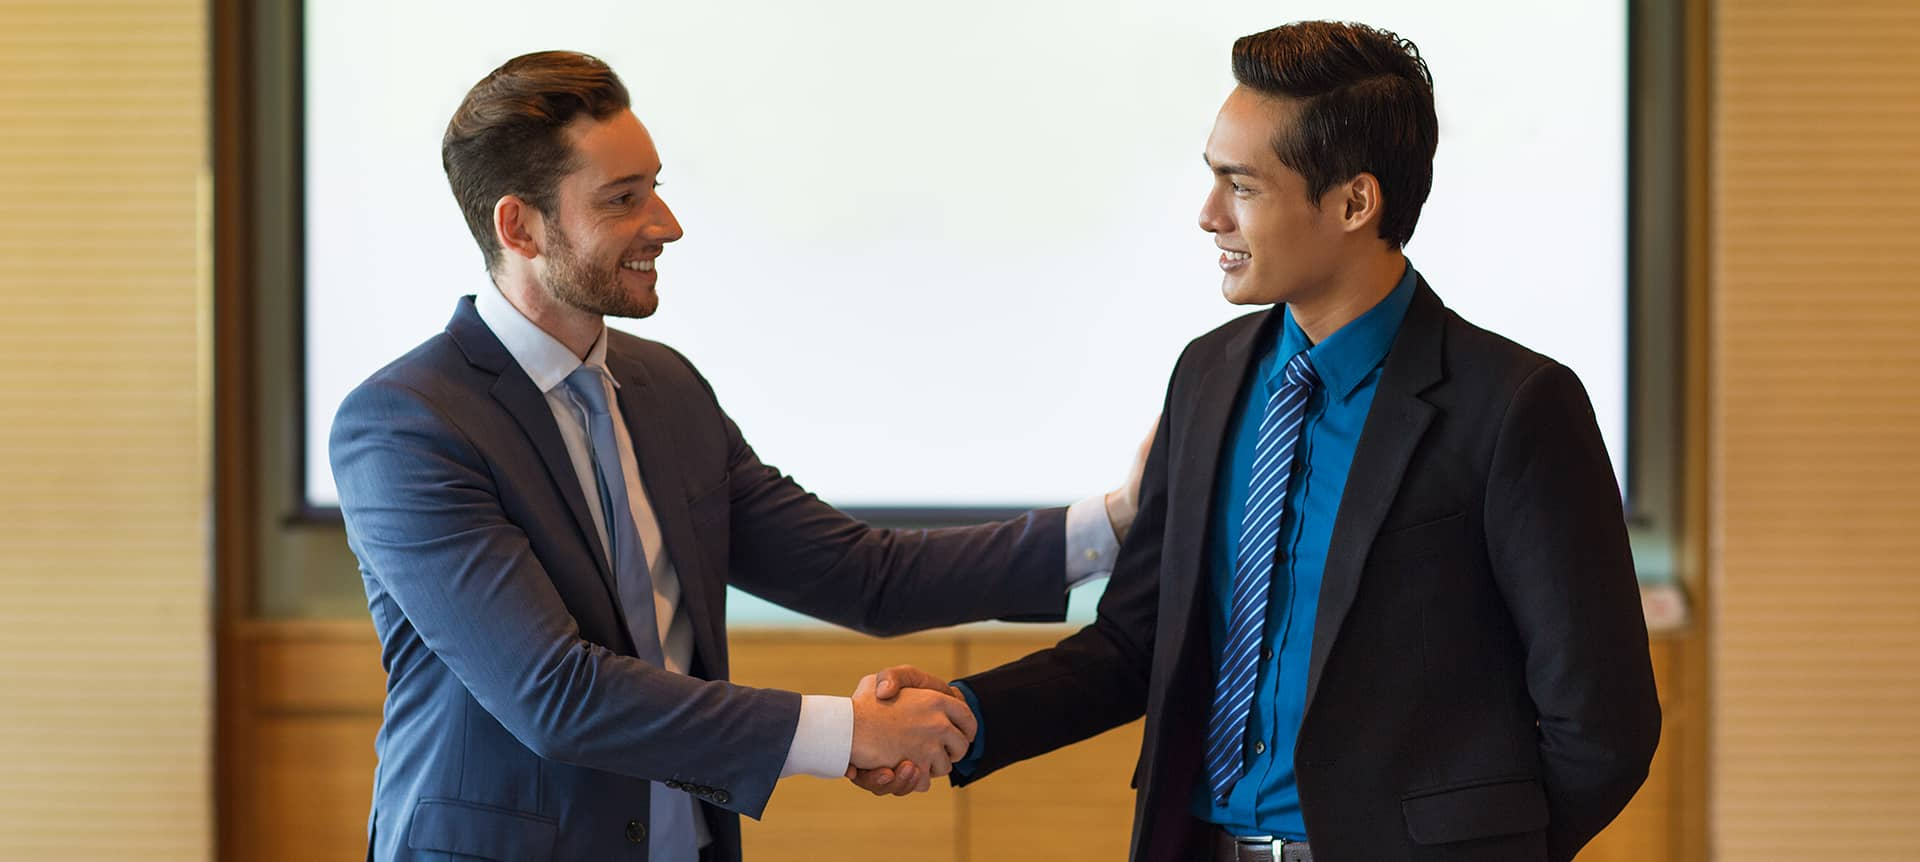 A picture of two male recruiters shaking hands